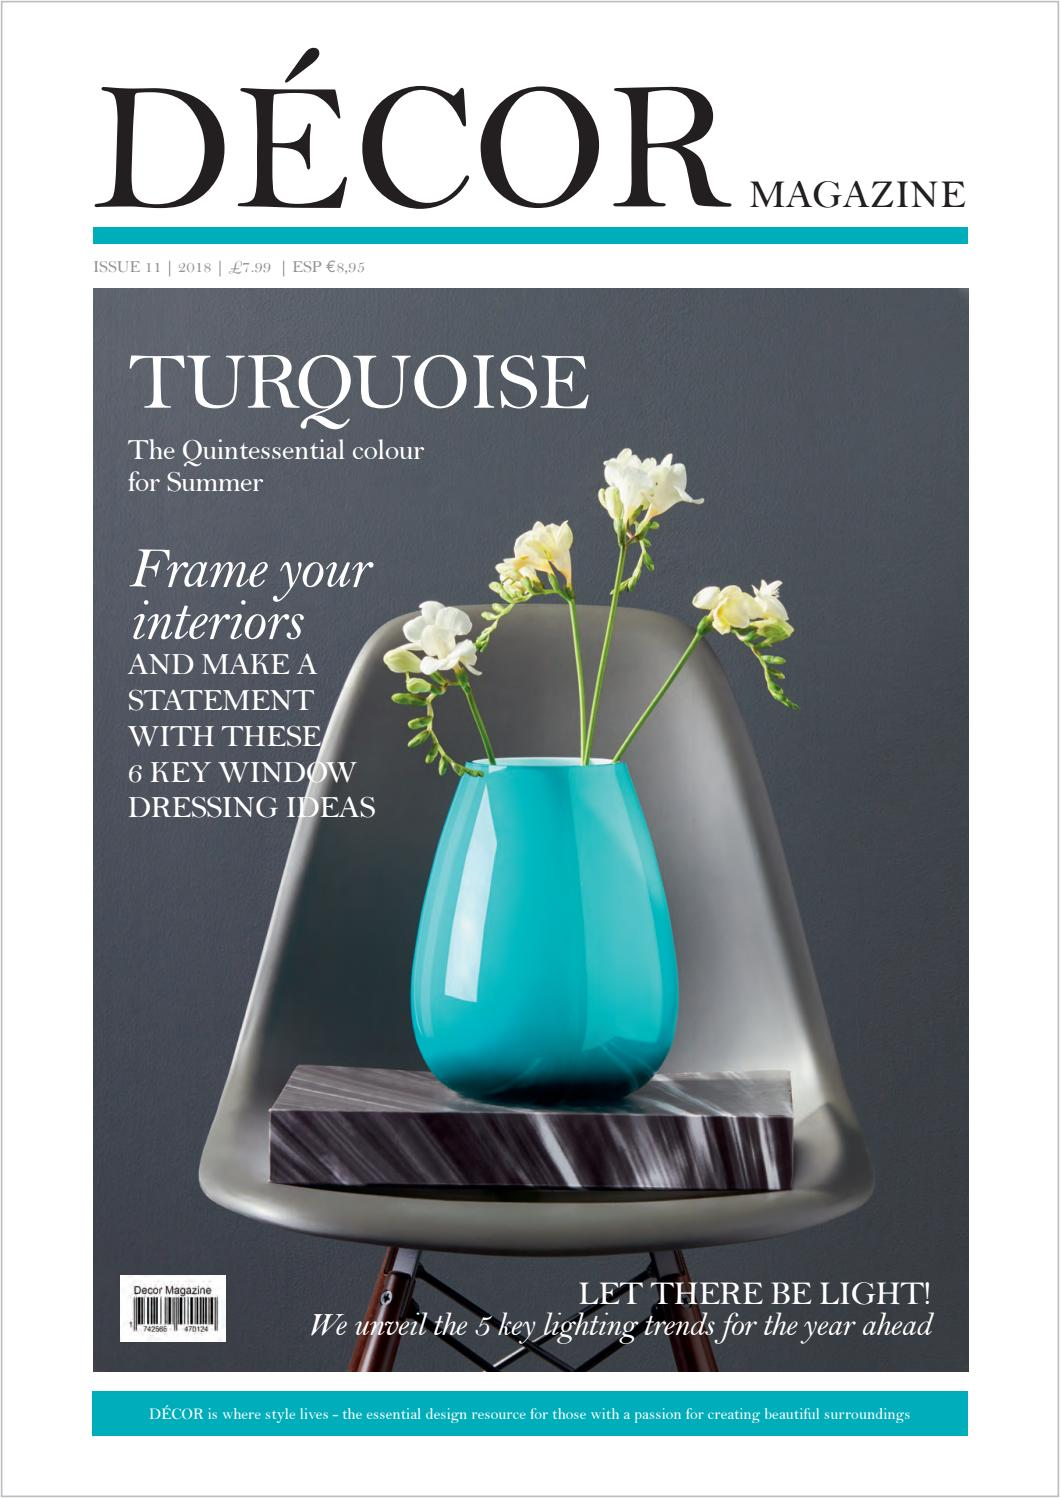 Stupendous Decor Magazine By Clearvision Marketing Issuu Caraccident5 Cool Chair Designs And Ideas Caraccident5Info